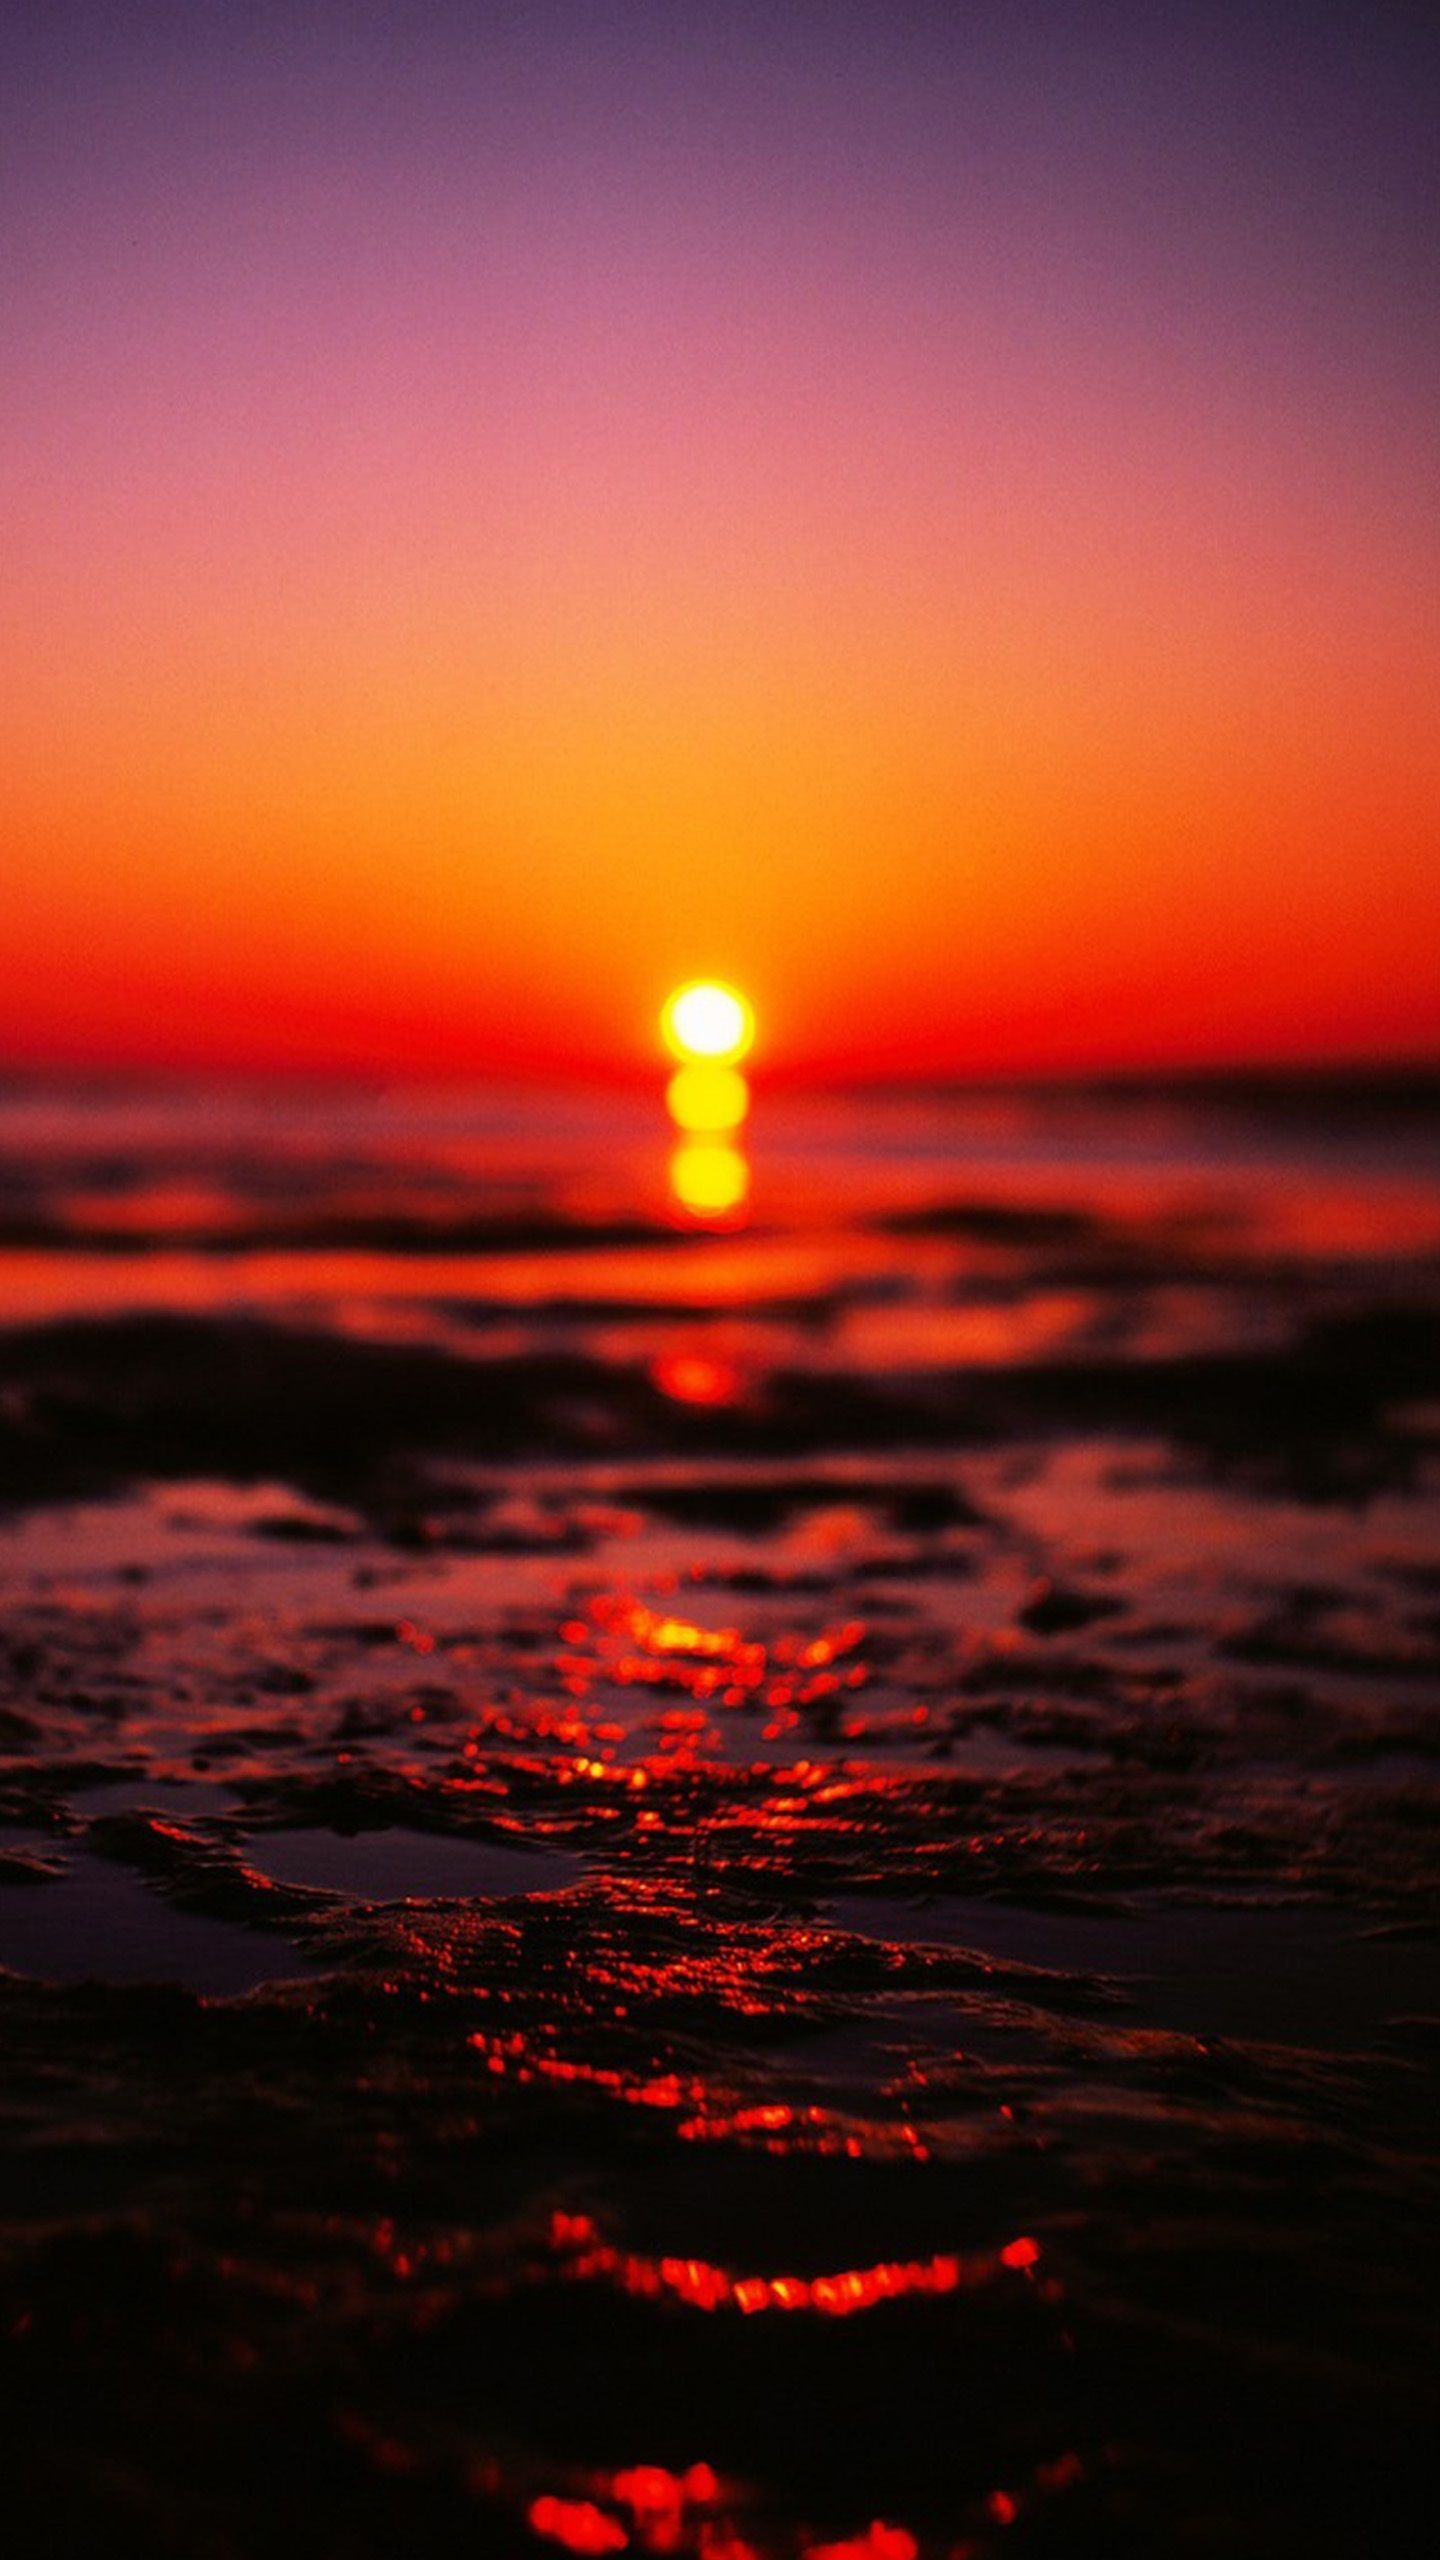 Blurry Sunset Wallpapers 36 Wallpapers Hd Wallpapers Sunset Iphone Wallpaper Sunset Wallpaper Hd Nature Wallpapers